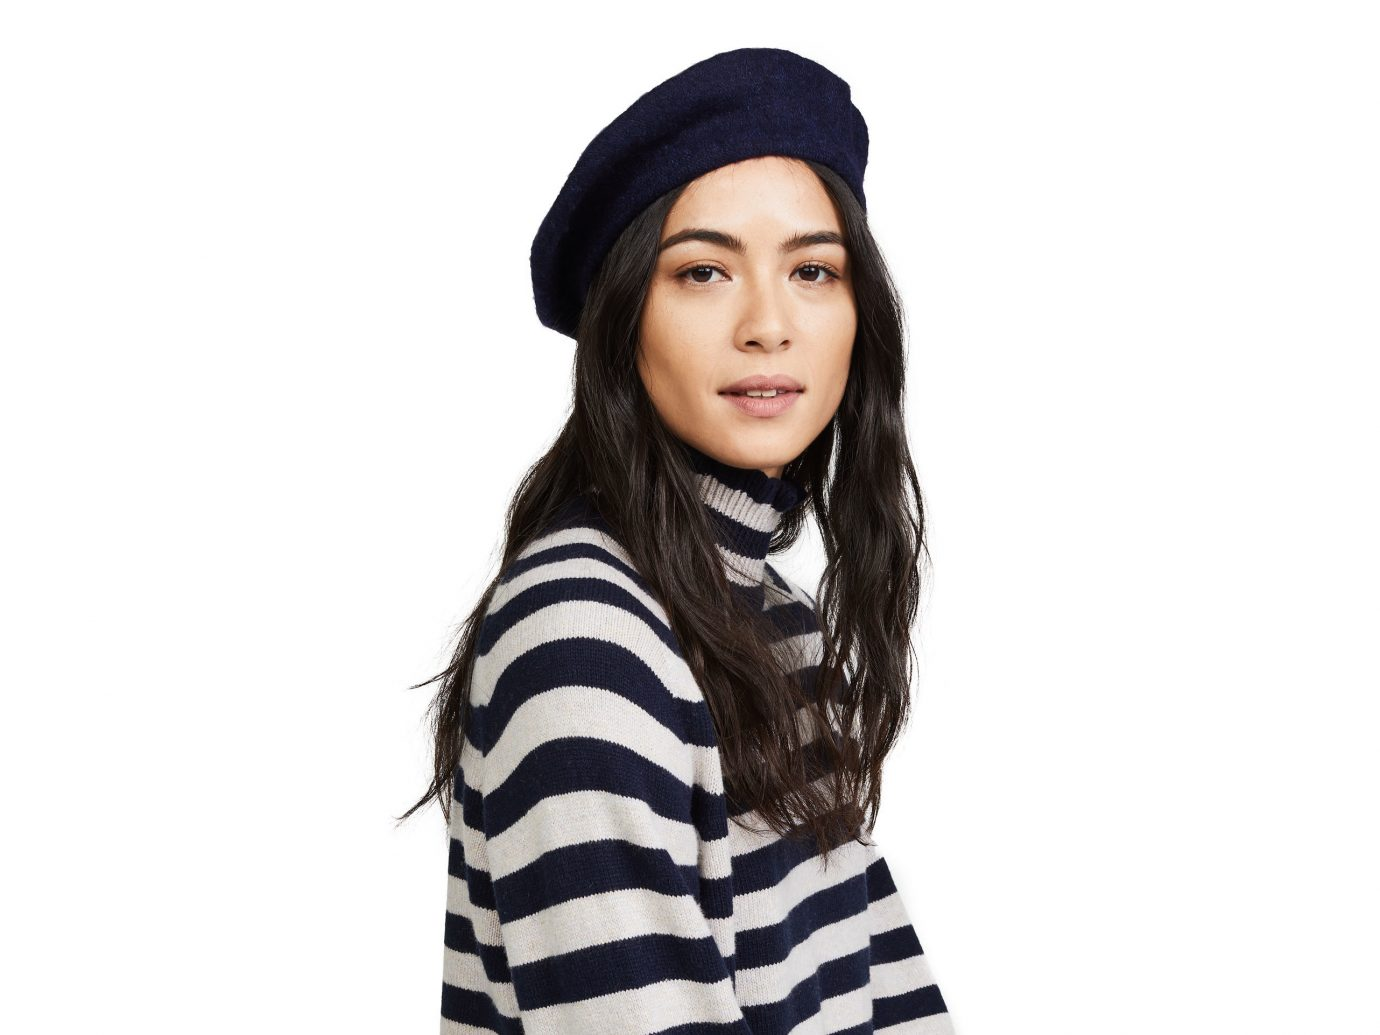 Travel Shop Travel Trends person clothing headgear cap beanie knit cap hat posing striped neck scarf pattern girl product